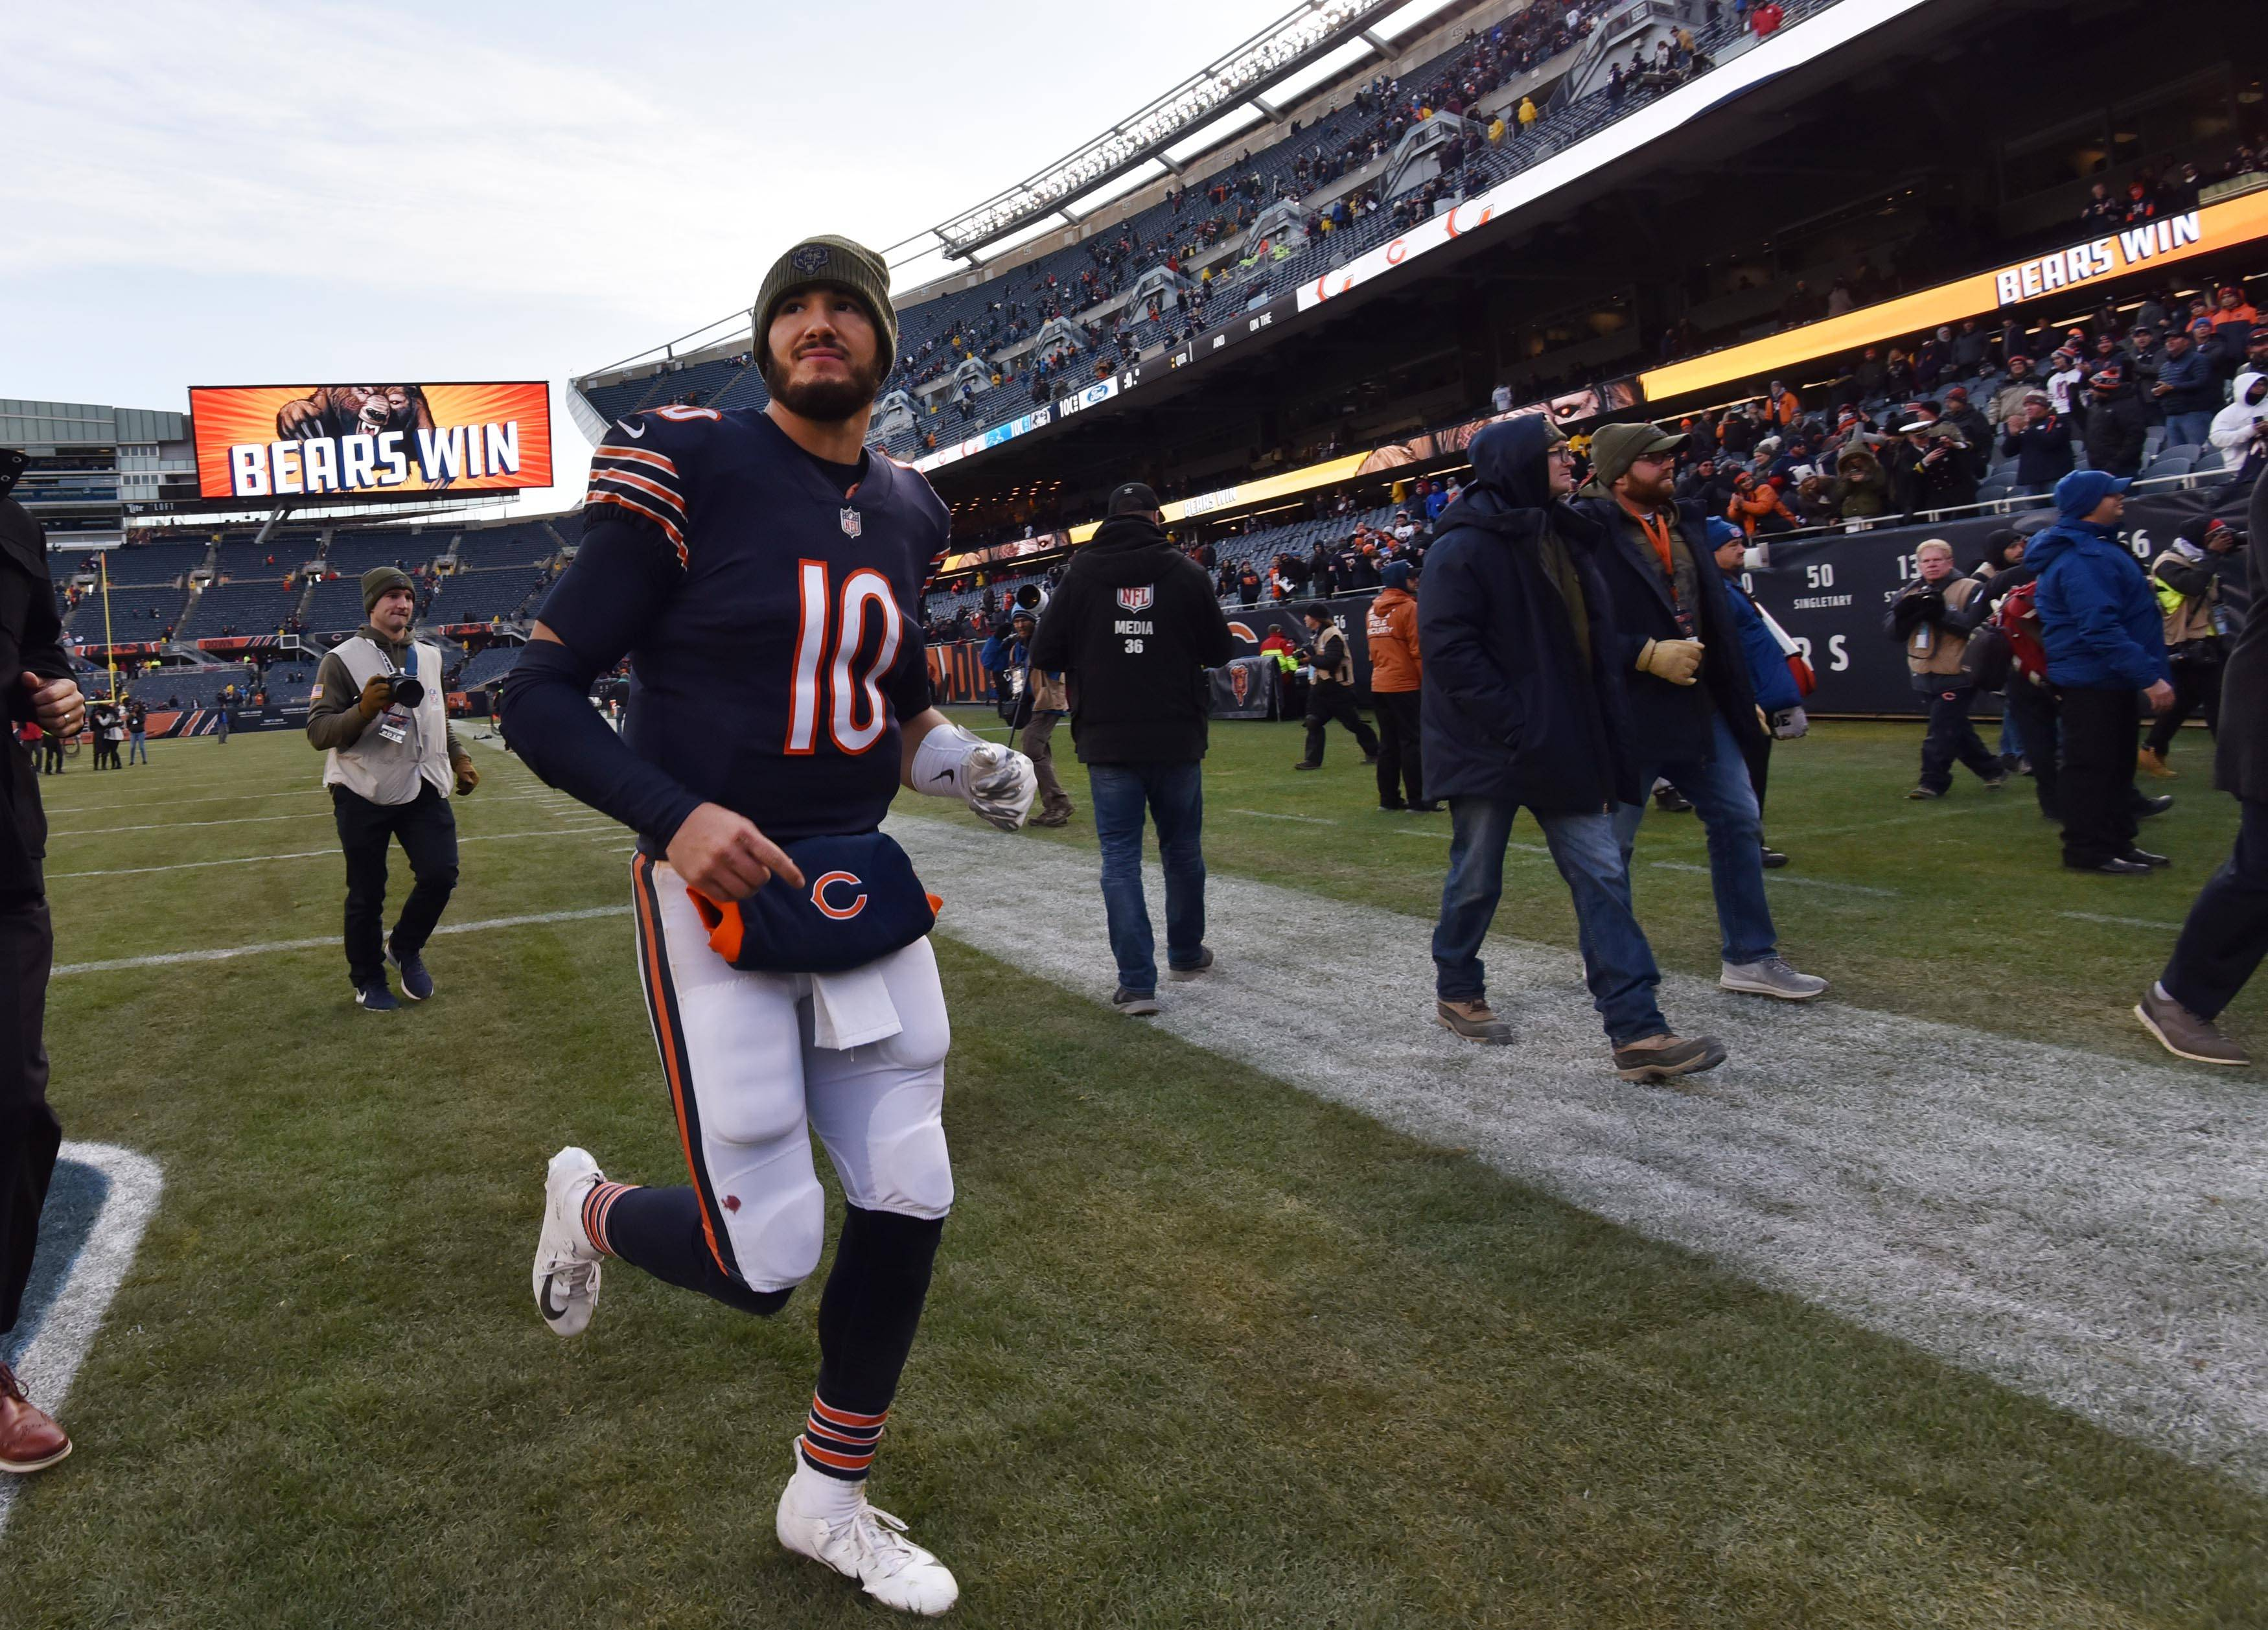 Chicago Bears quarterback Mitchell Trubisky comes off the field after a 34-22 win against the Detroit Lions Sunday at Soldier Field in Chicago.